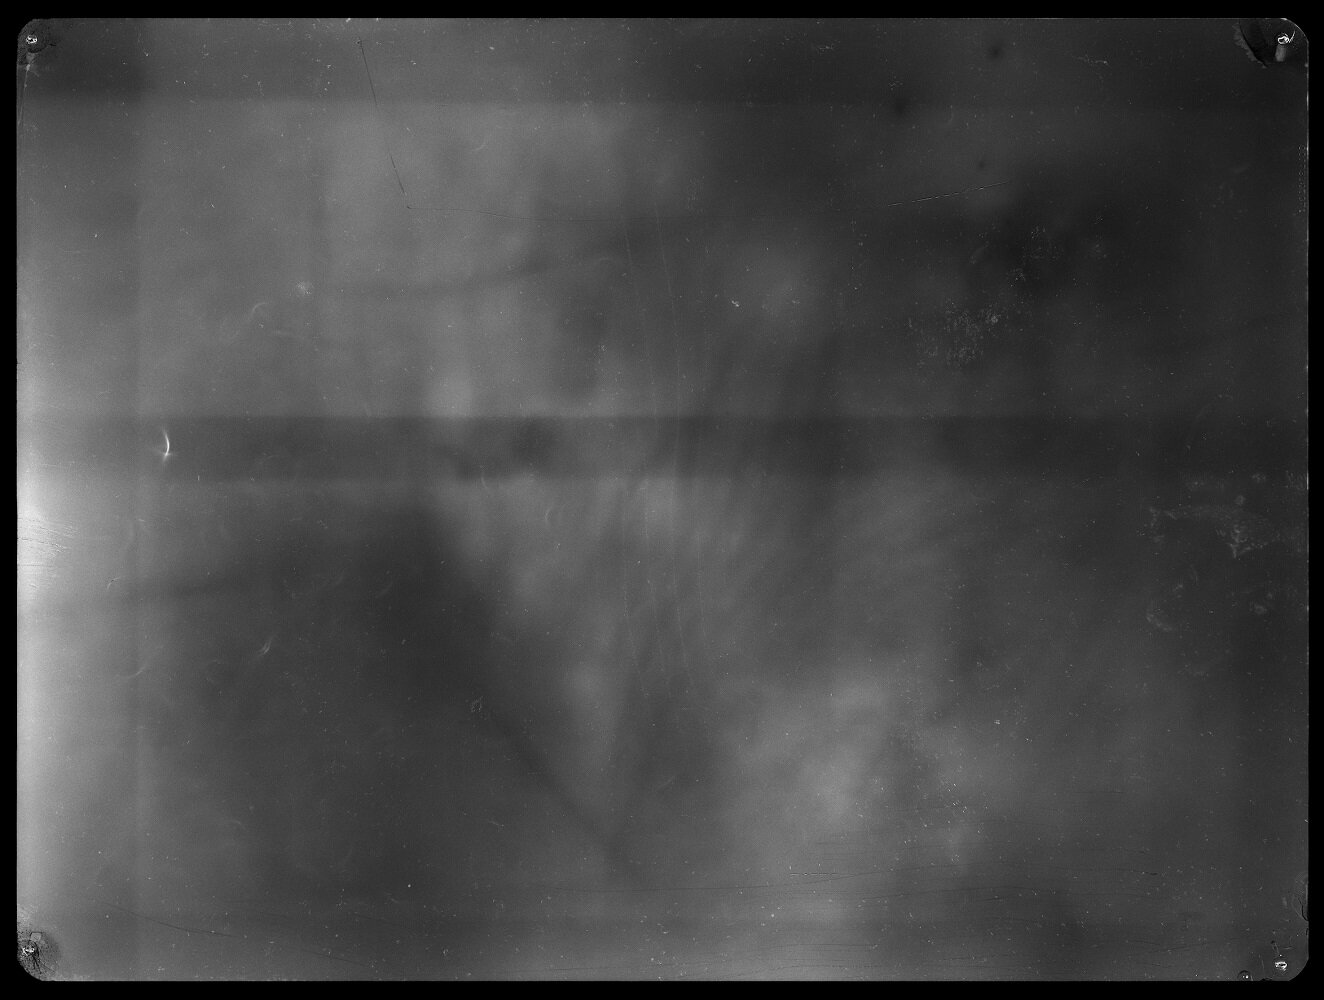 Alice Miceli,  Fragment of a Ground  I - 7.432 µSv (26.05.08 - 07.08.08)    , backlight, radiographic negative. Courtesy of the artist and Galeria Nara Roesler.